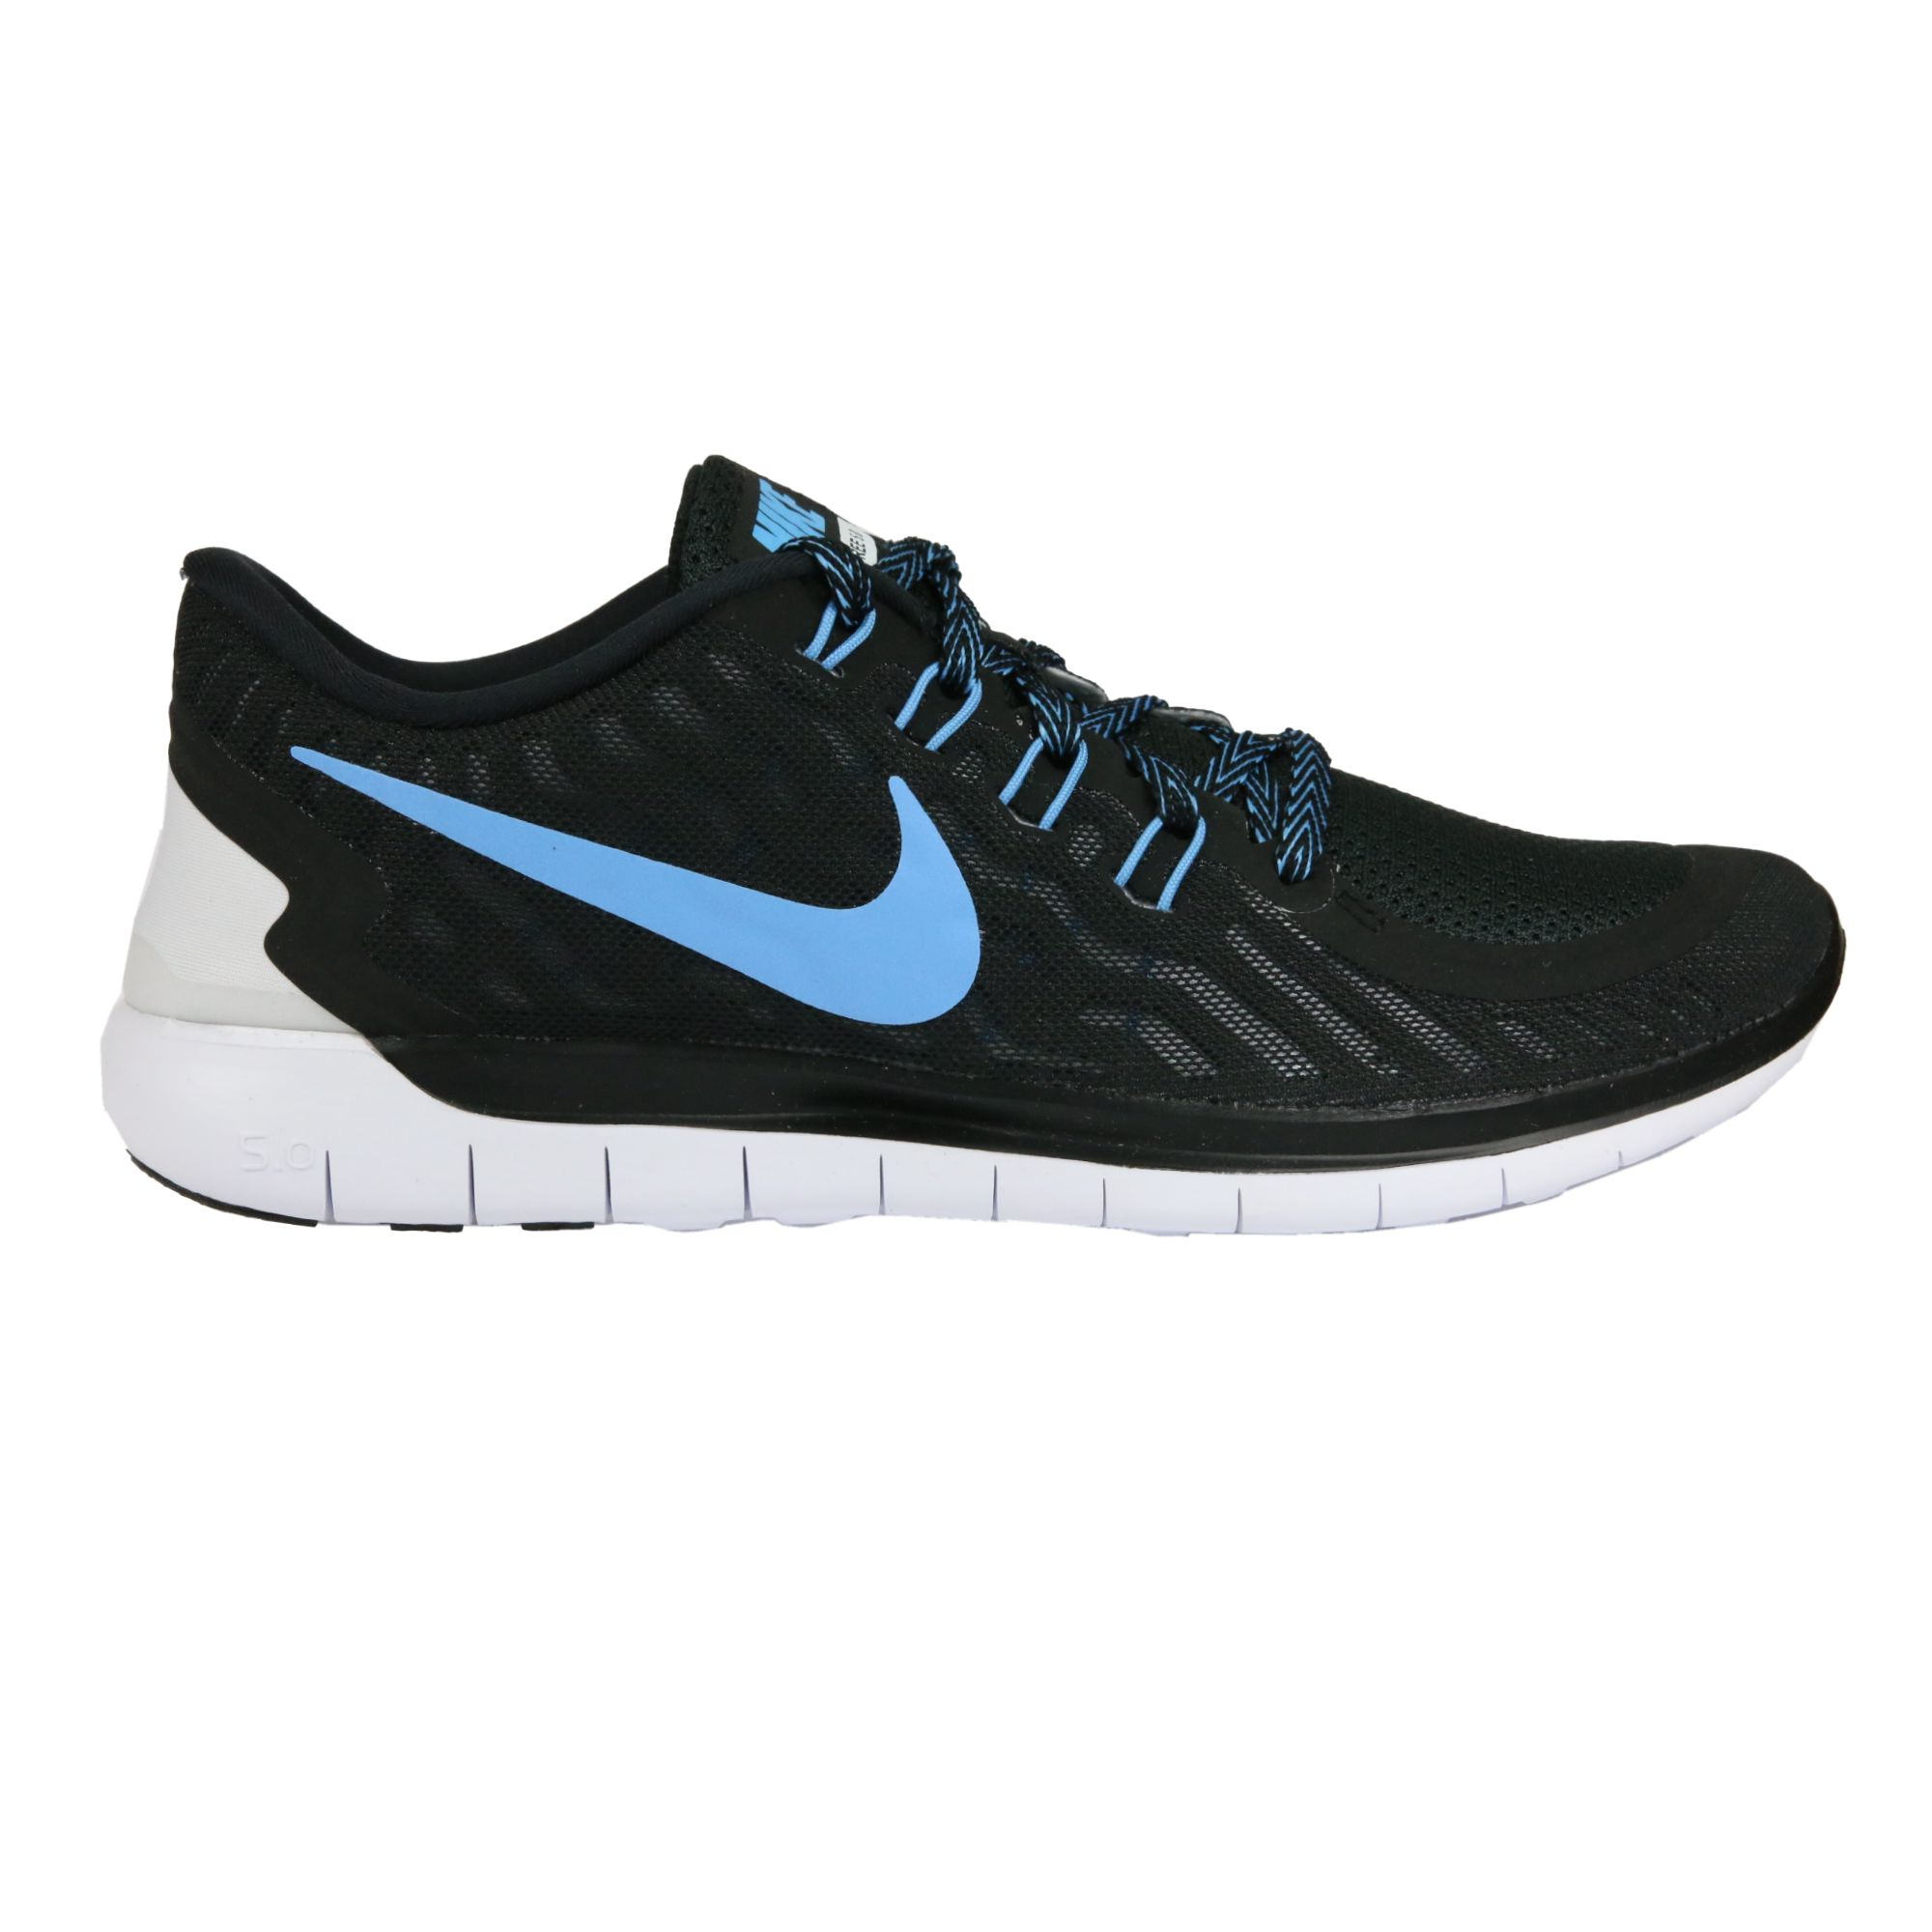 nike free 5 0 herren schuhe sportschuhe laufschuhe. Black Bedroom Furniture Sets. Home Design Ideas